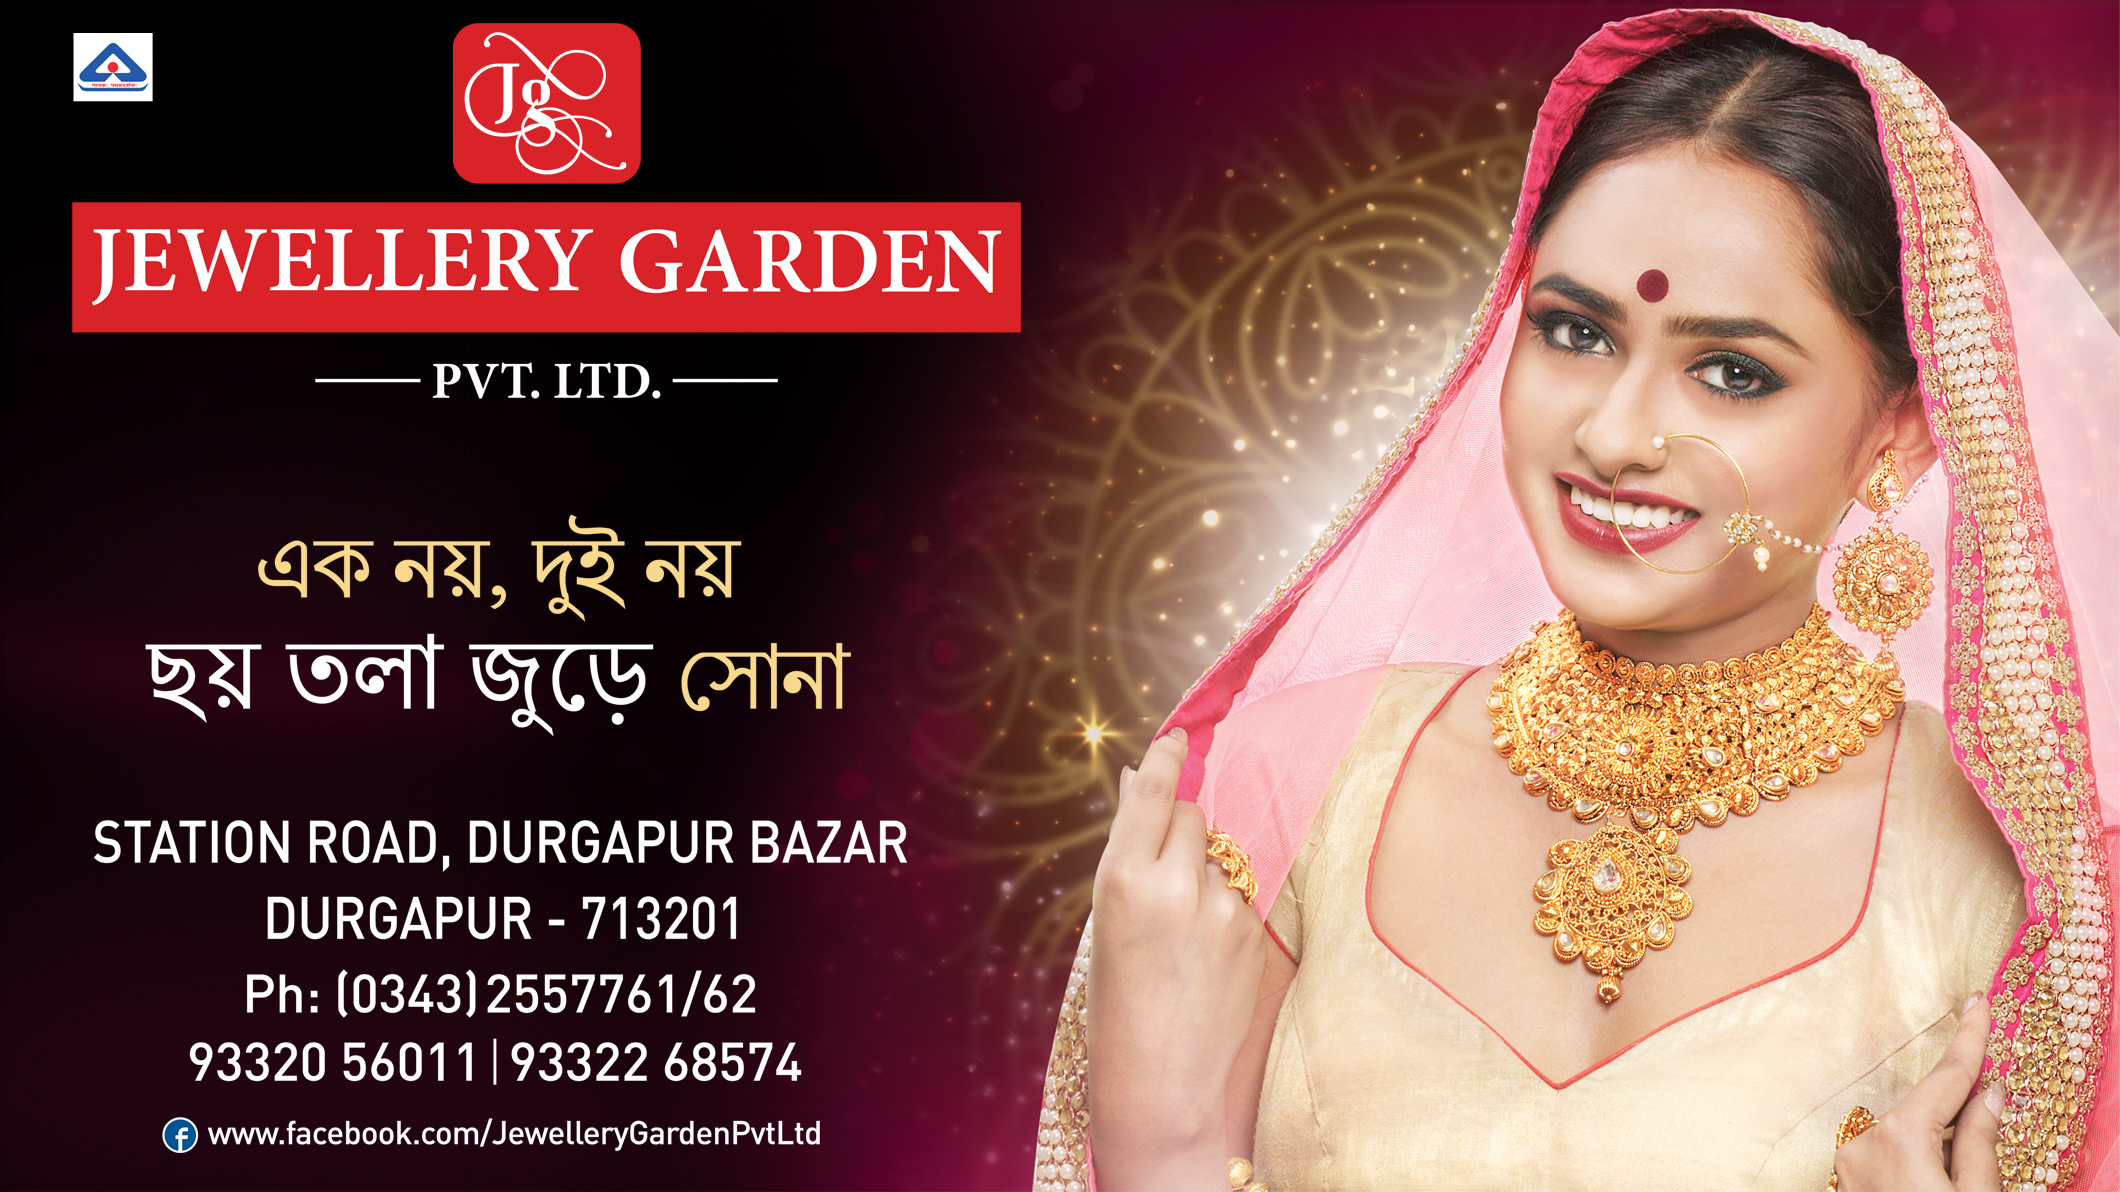 Jewellery Garden Pvt Ltd